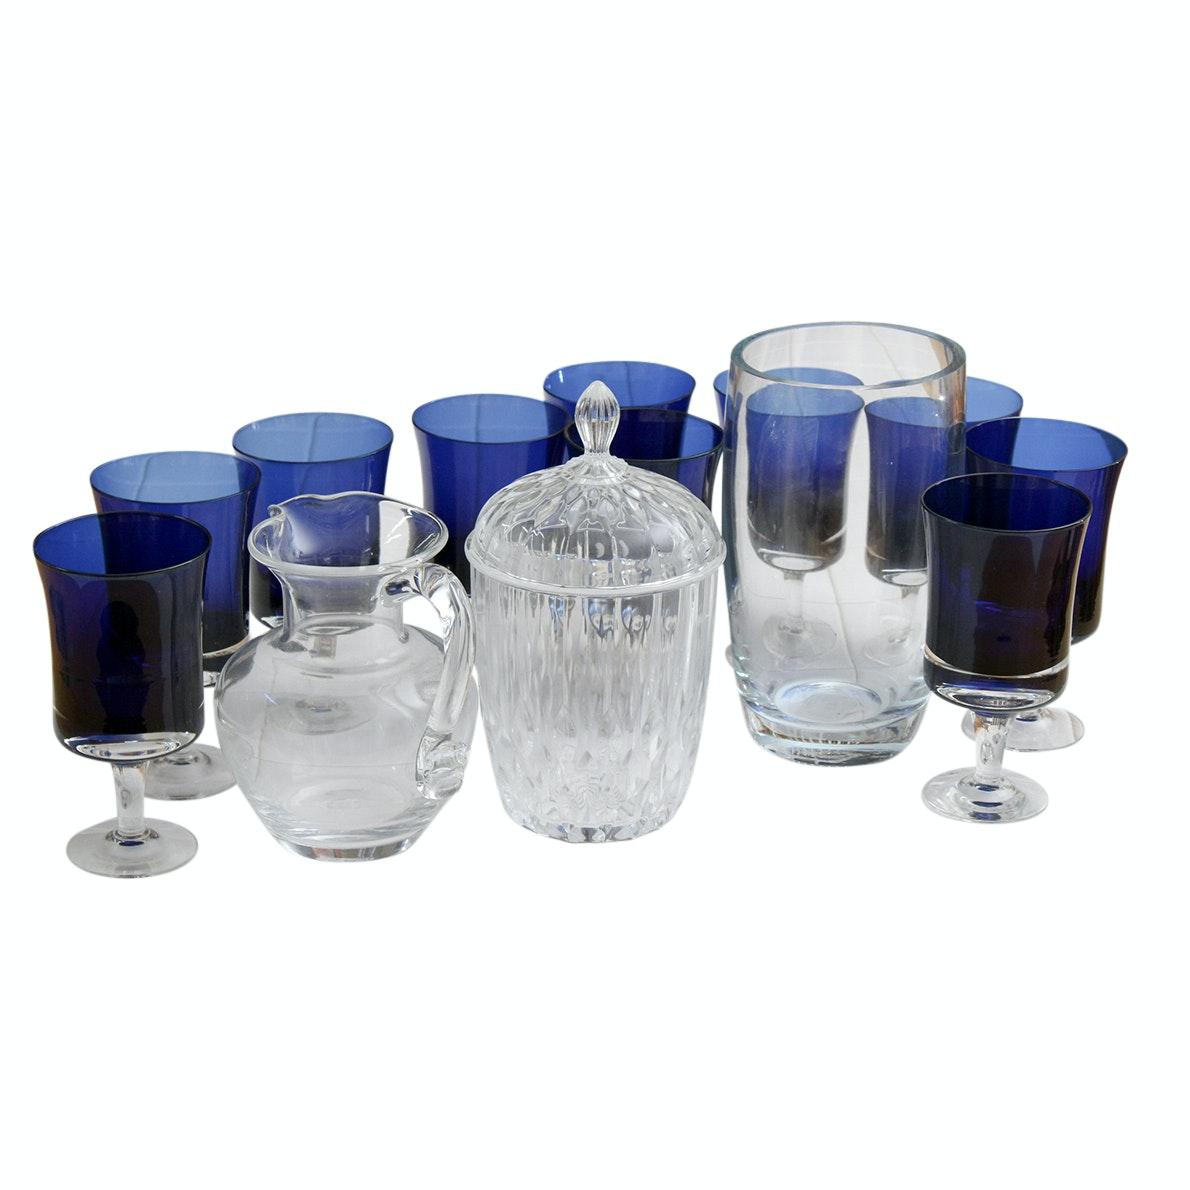 Assorted Glassware Featuring Villeroy & Boch, Simon Pearce and Cristal d'Arques